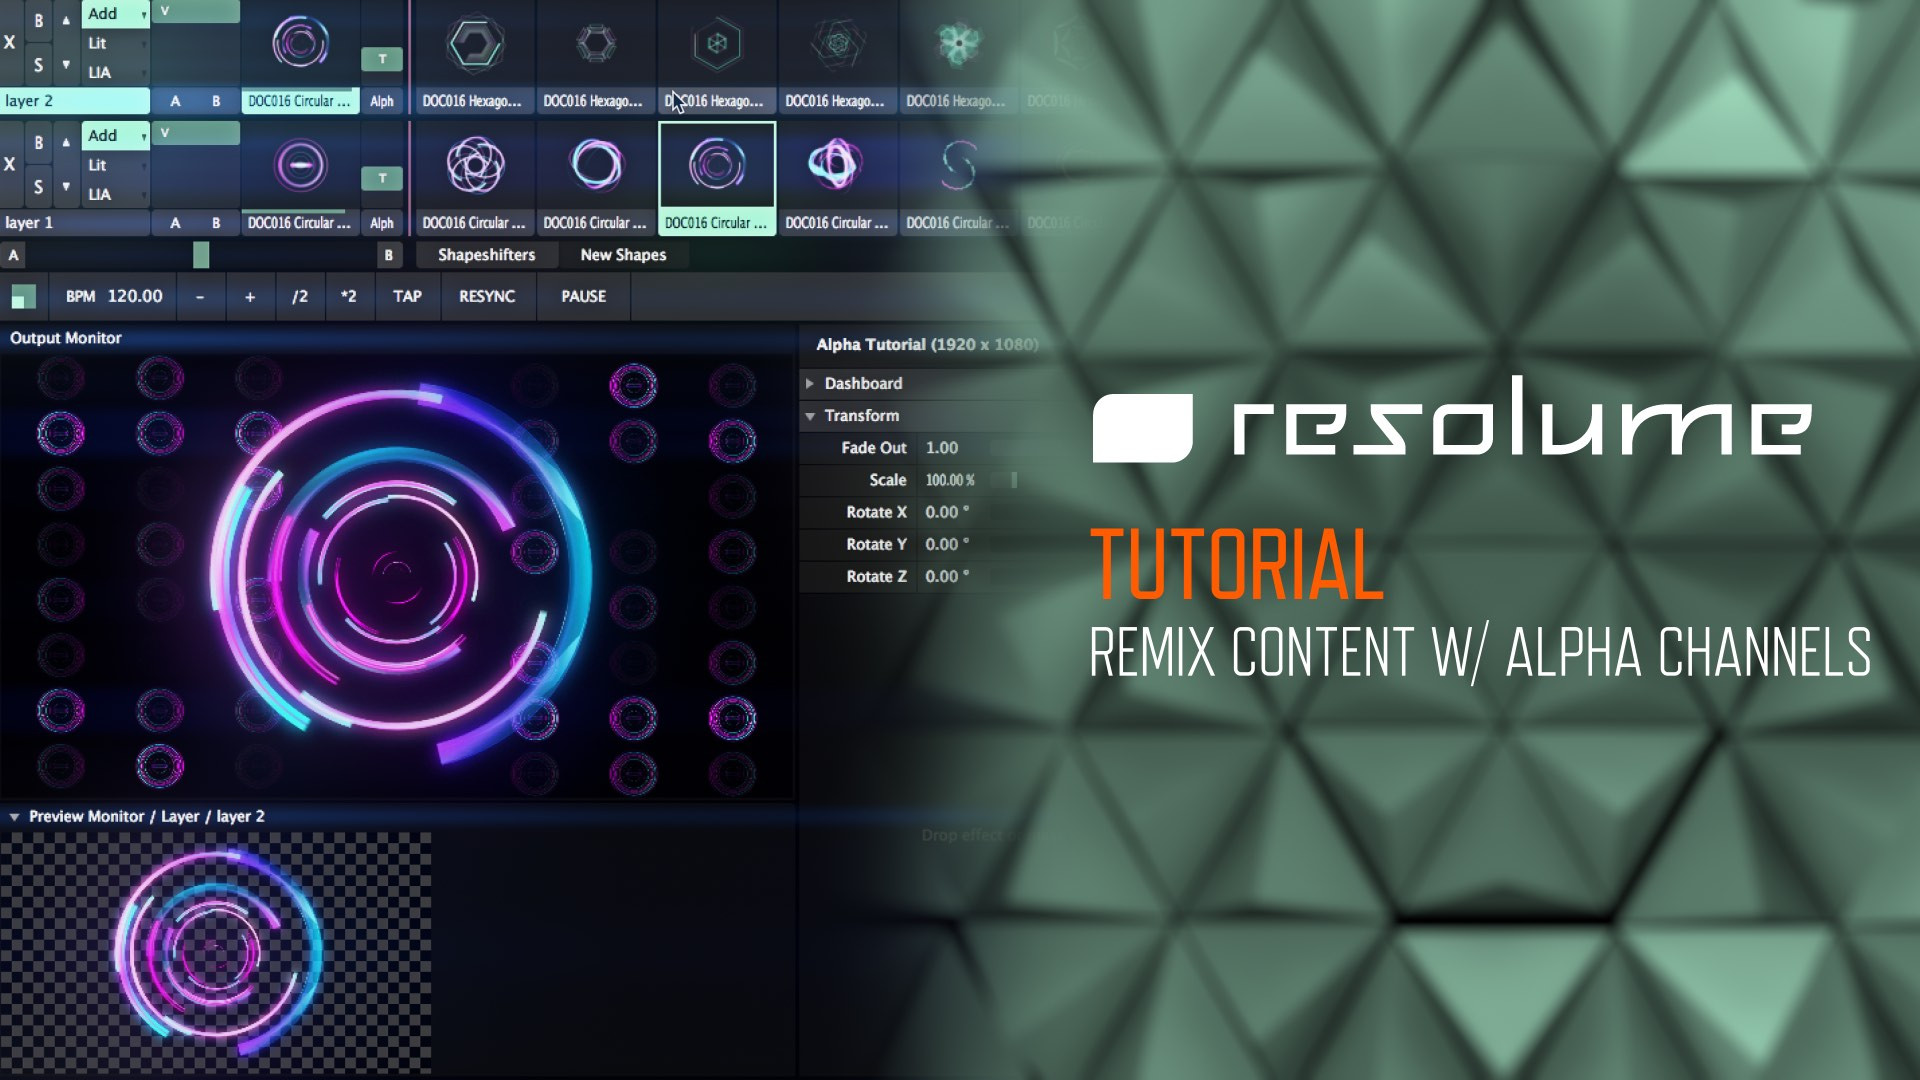 Resolume Tutorial - Remix Content with Alpha Channels